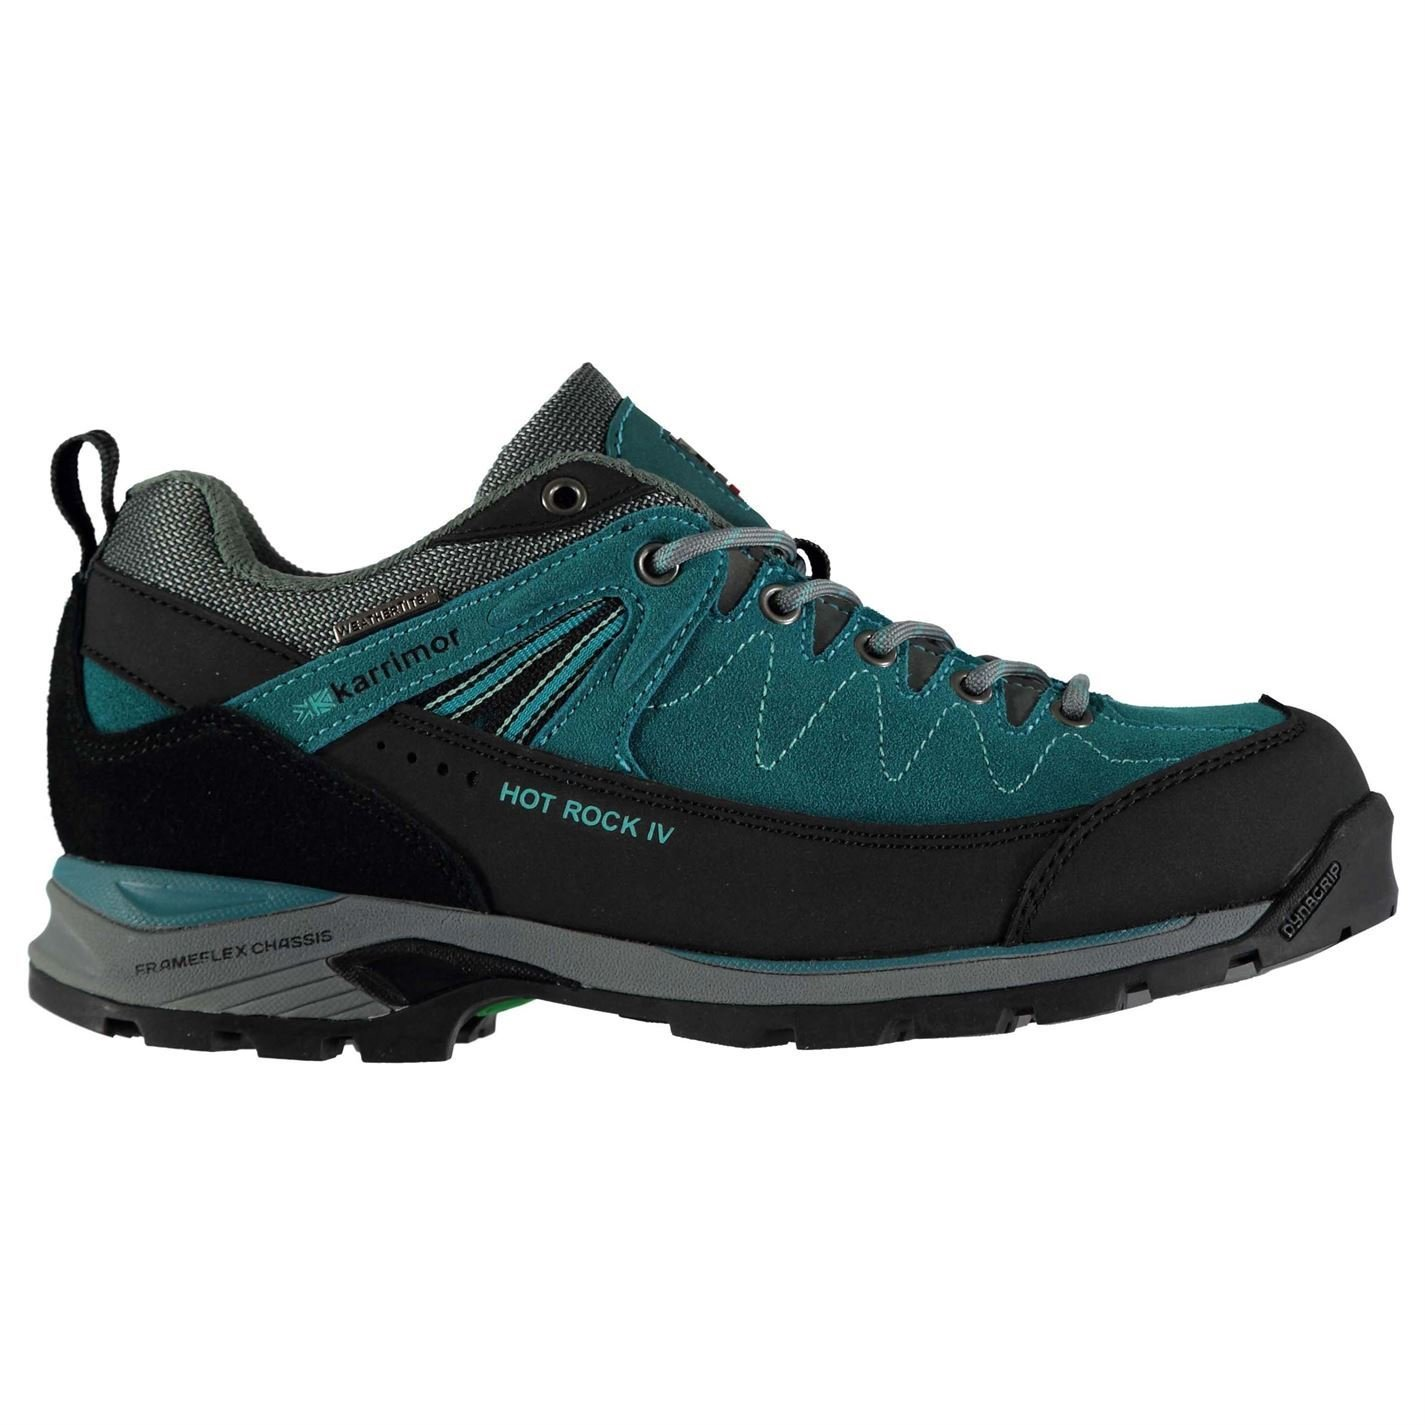 Karrimor Womens Hot Rock Low Walking Shoes Lace up Padded B078WTBT6D UK 7 (41)|Teal